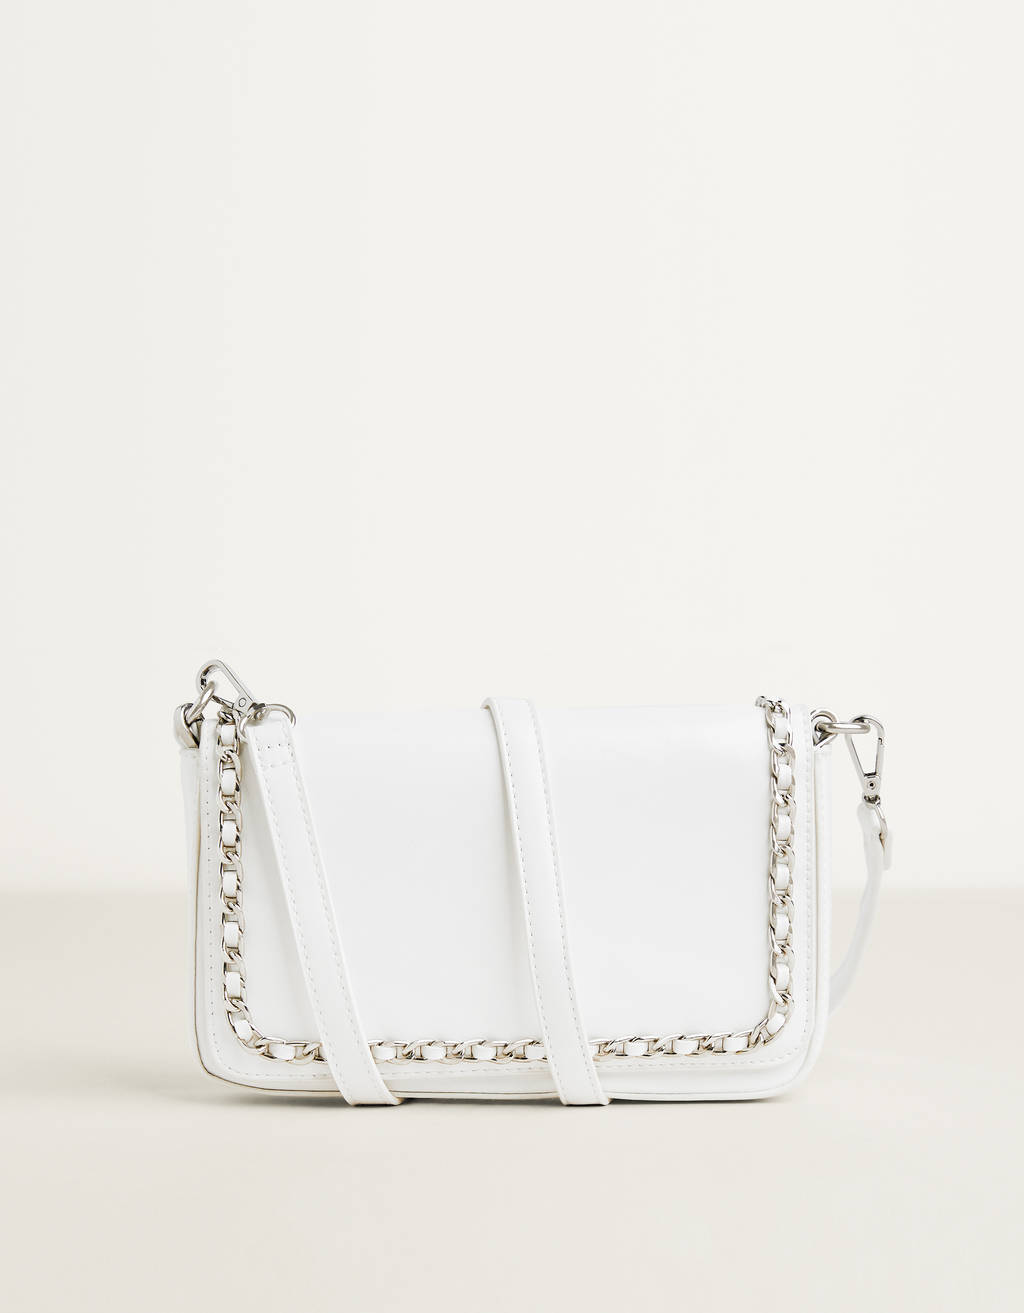 Handbag with chain strap